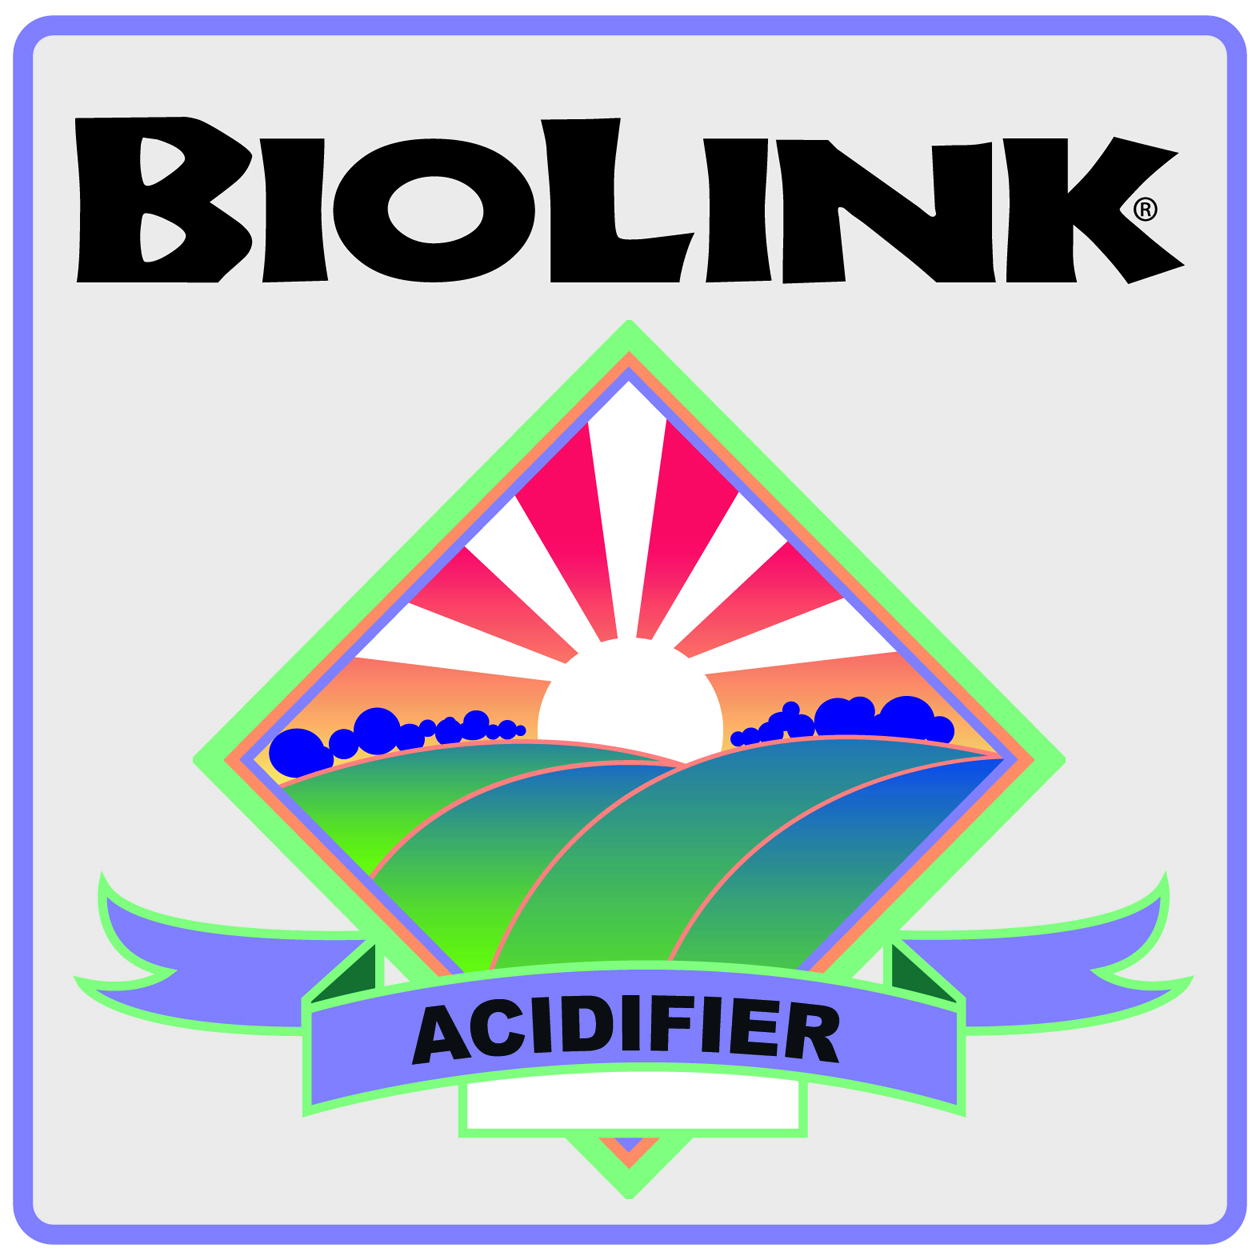 biolink acidifier